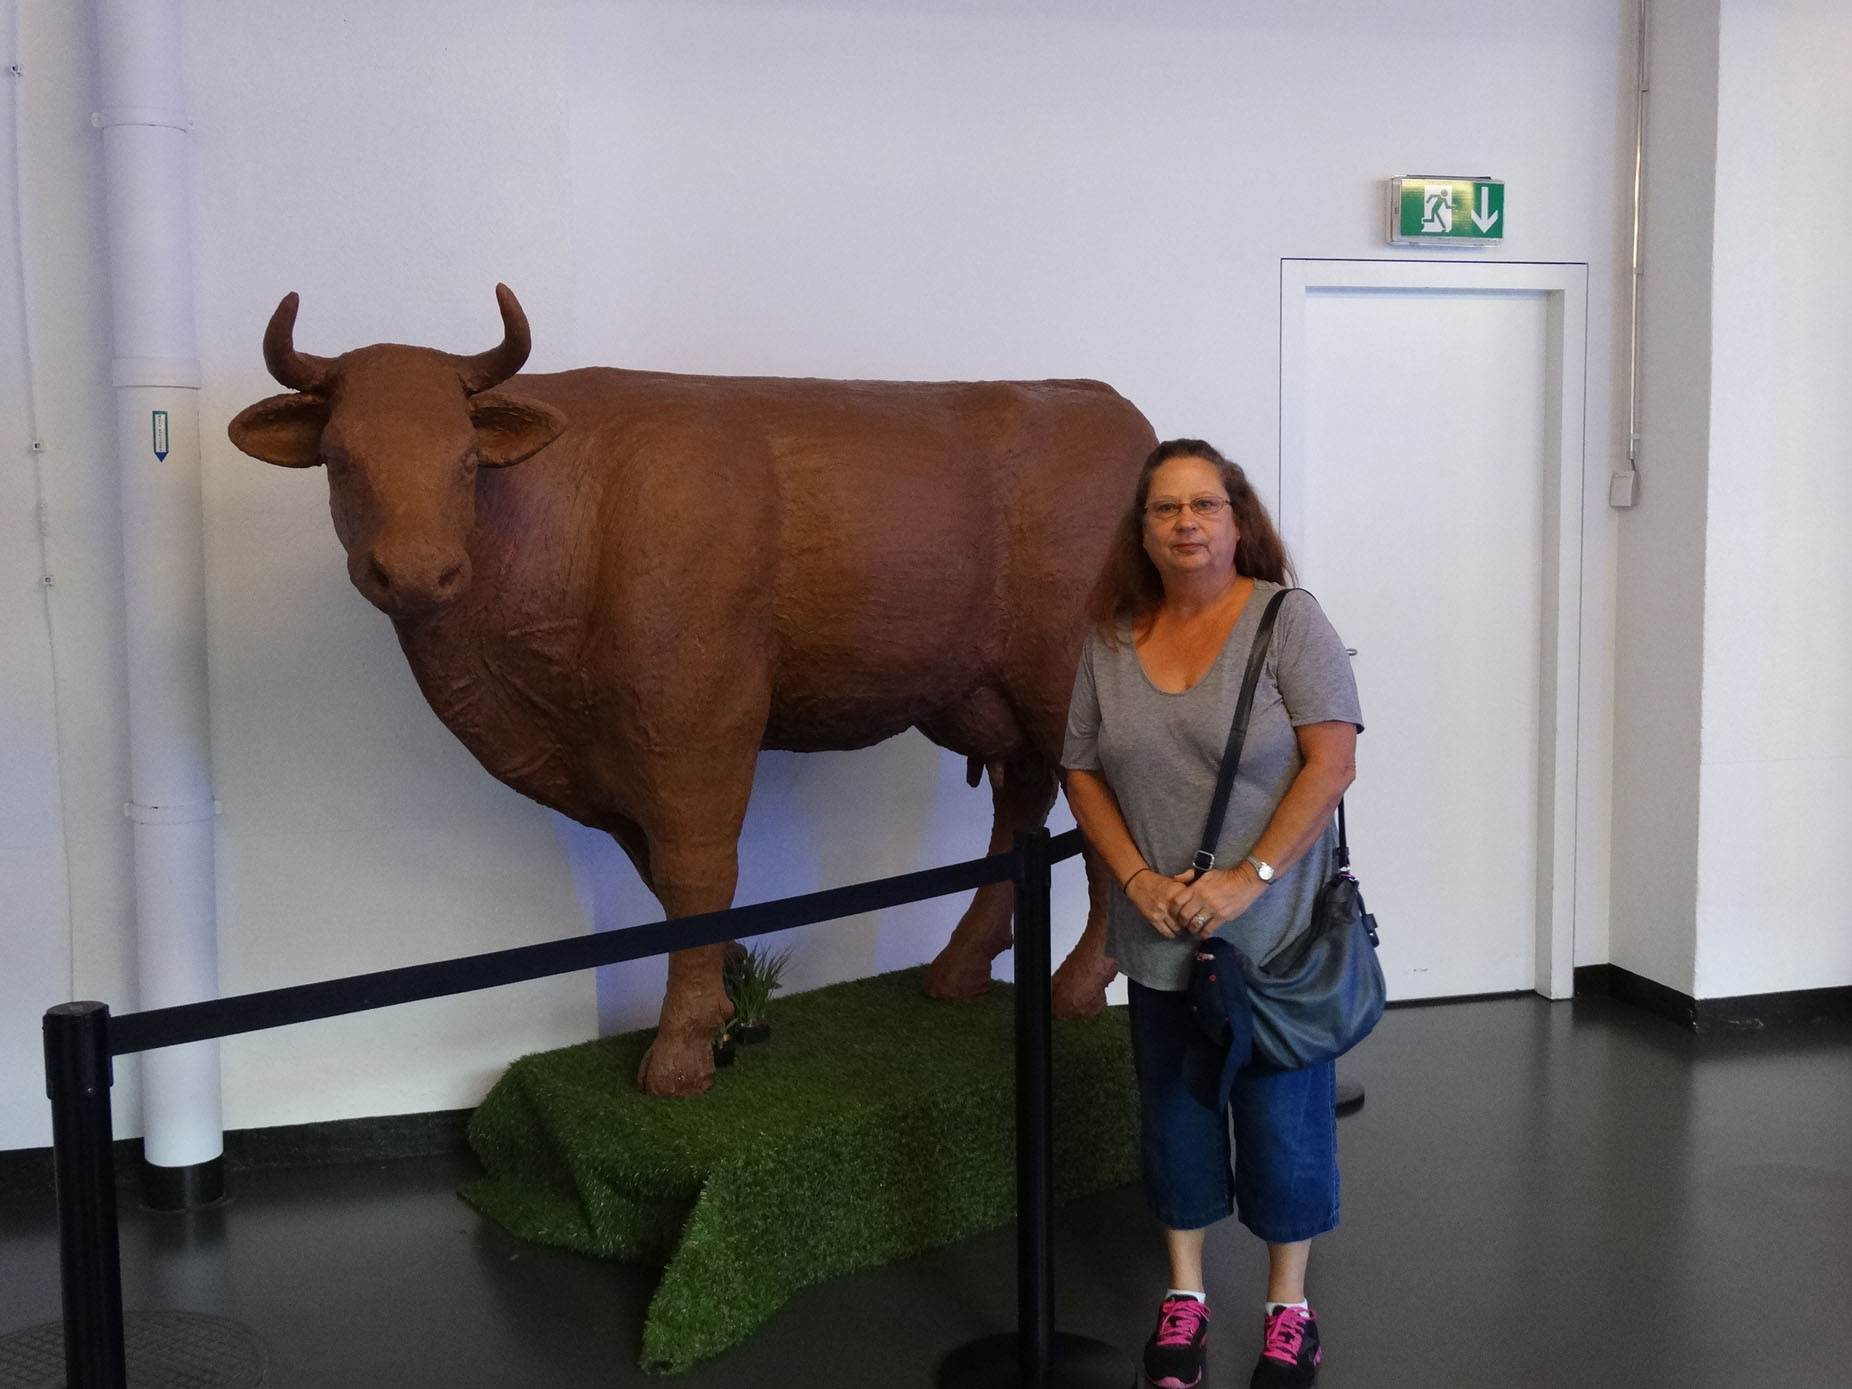 me and a chocolate cow.